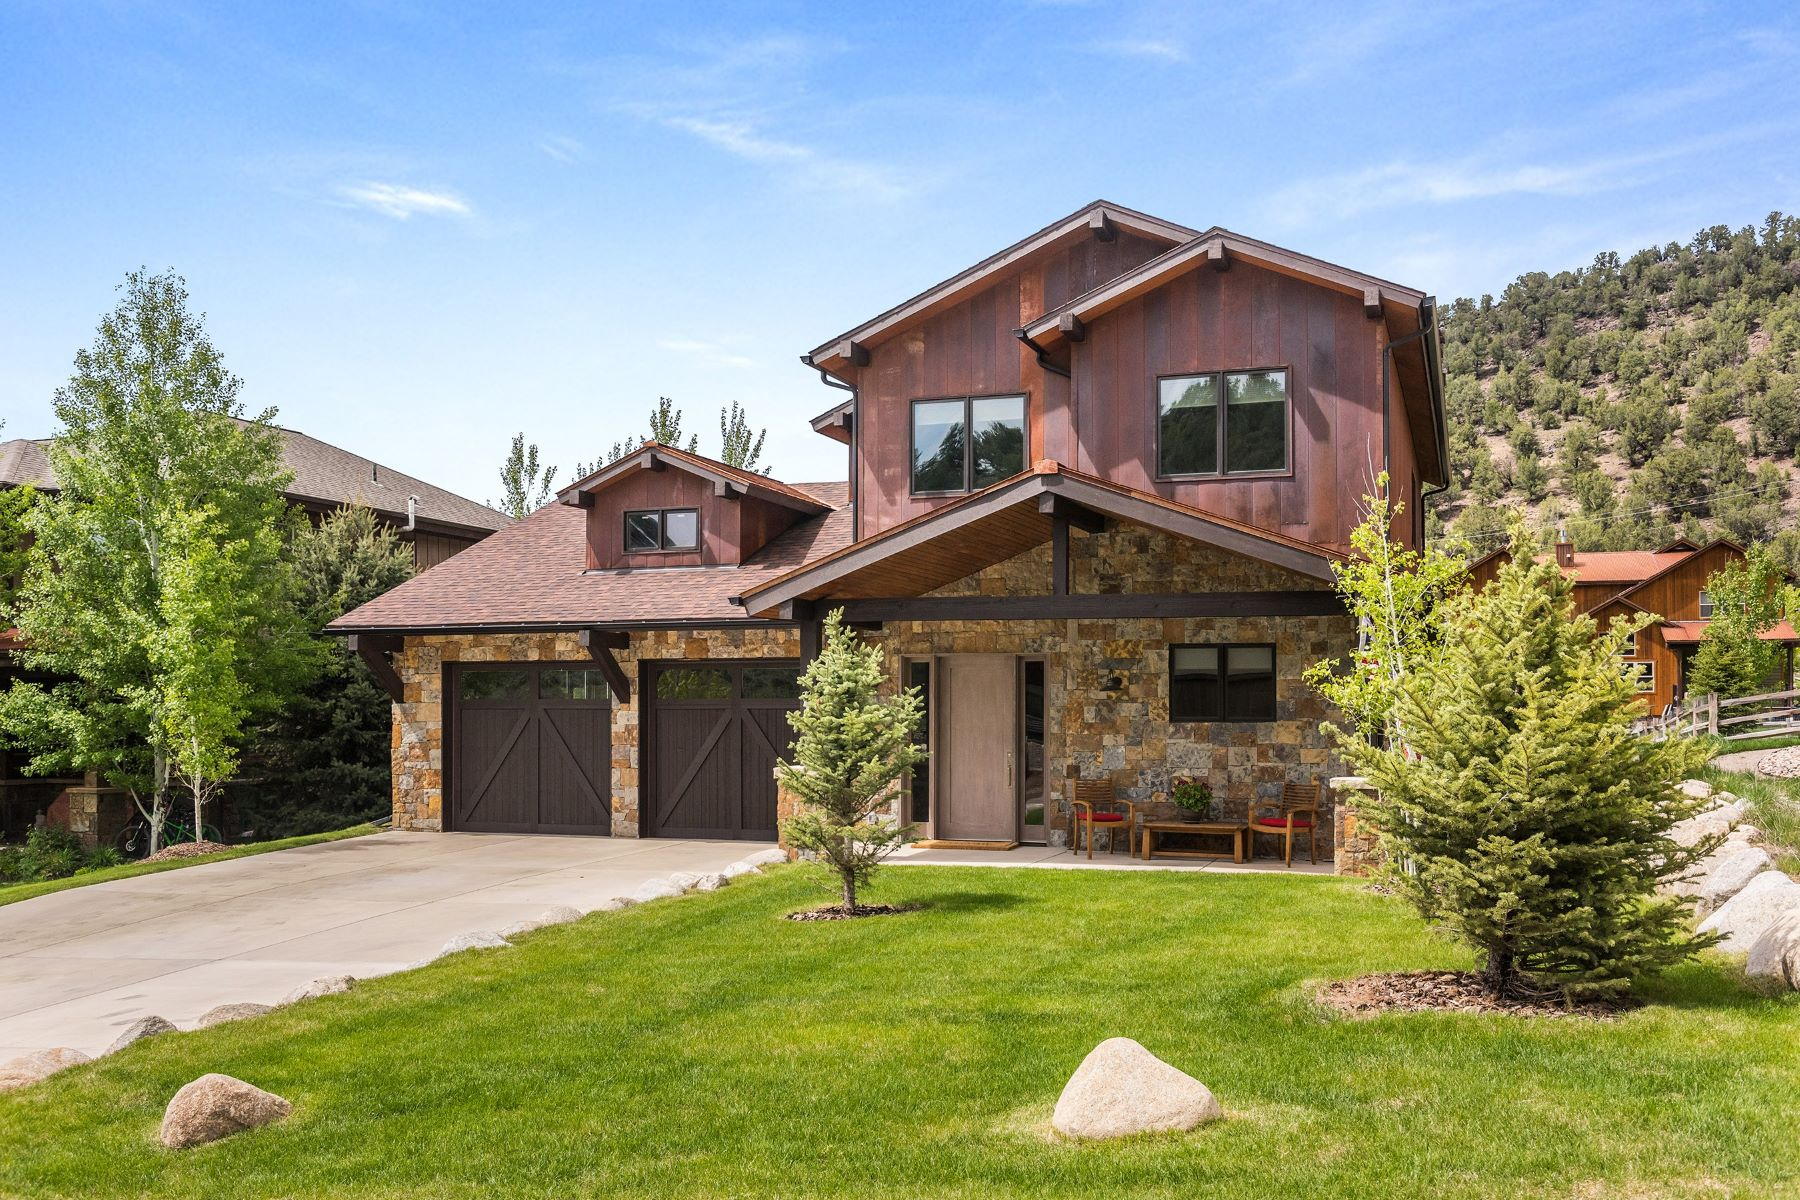 Single Family Homes for Active at Beautiful Pinyon Mesa Home 53 Cliff Rose Way Glenwood Springs, Colorado 81601 United States